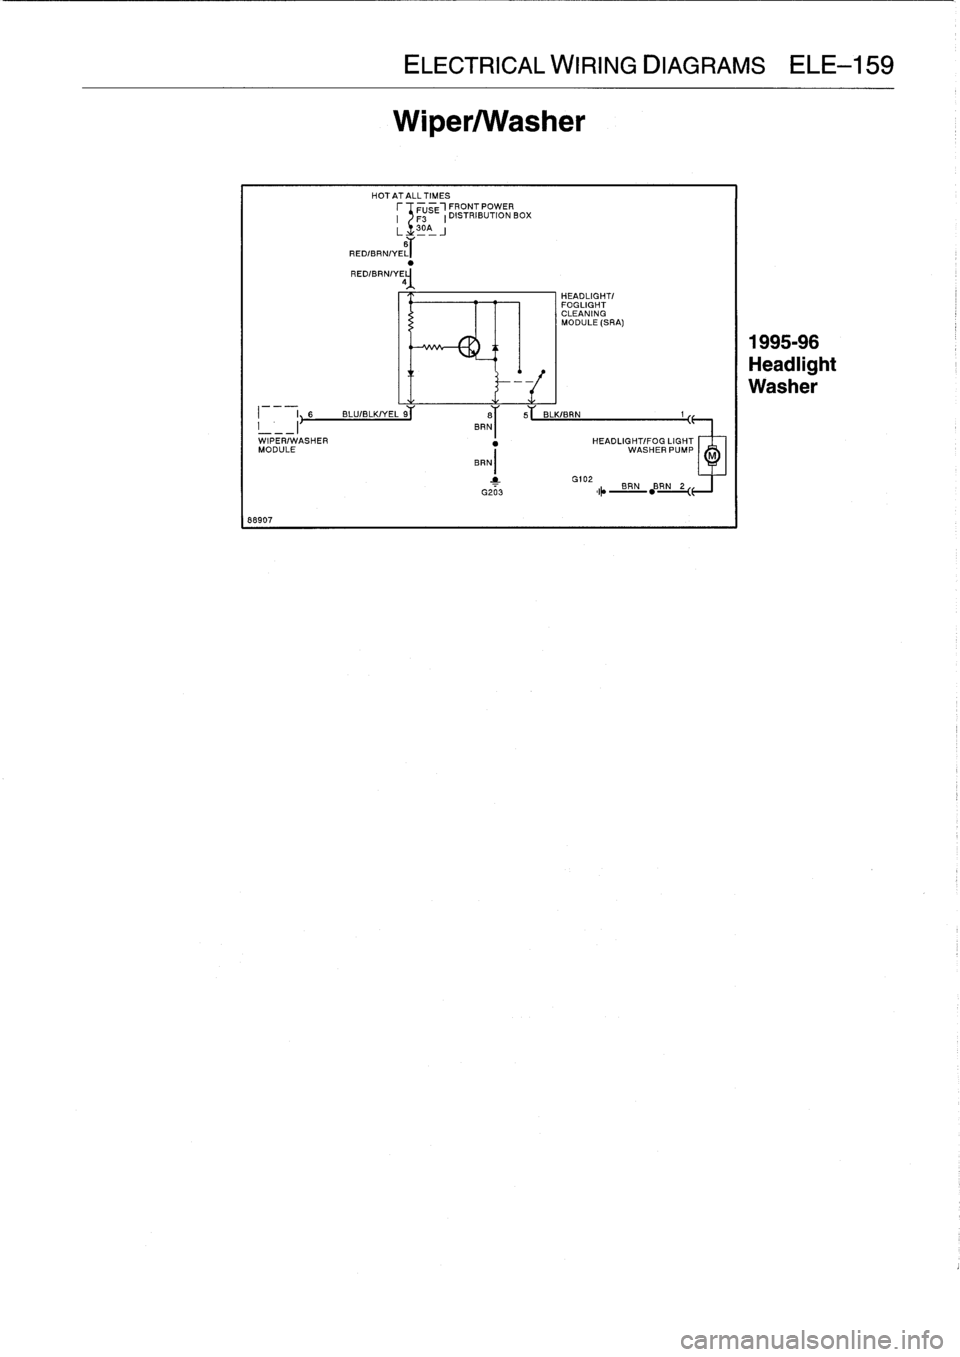 w960_2800 641 bmw m3 1992 e36 workshop manual BMW Stereo Wiring Diagram at gsmportal.co